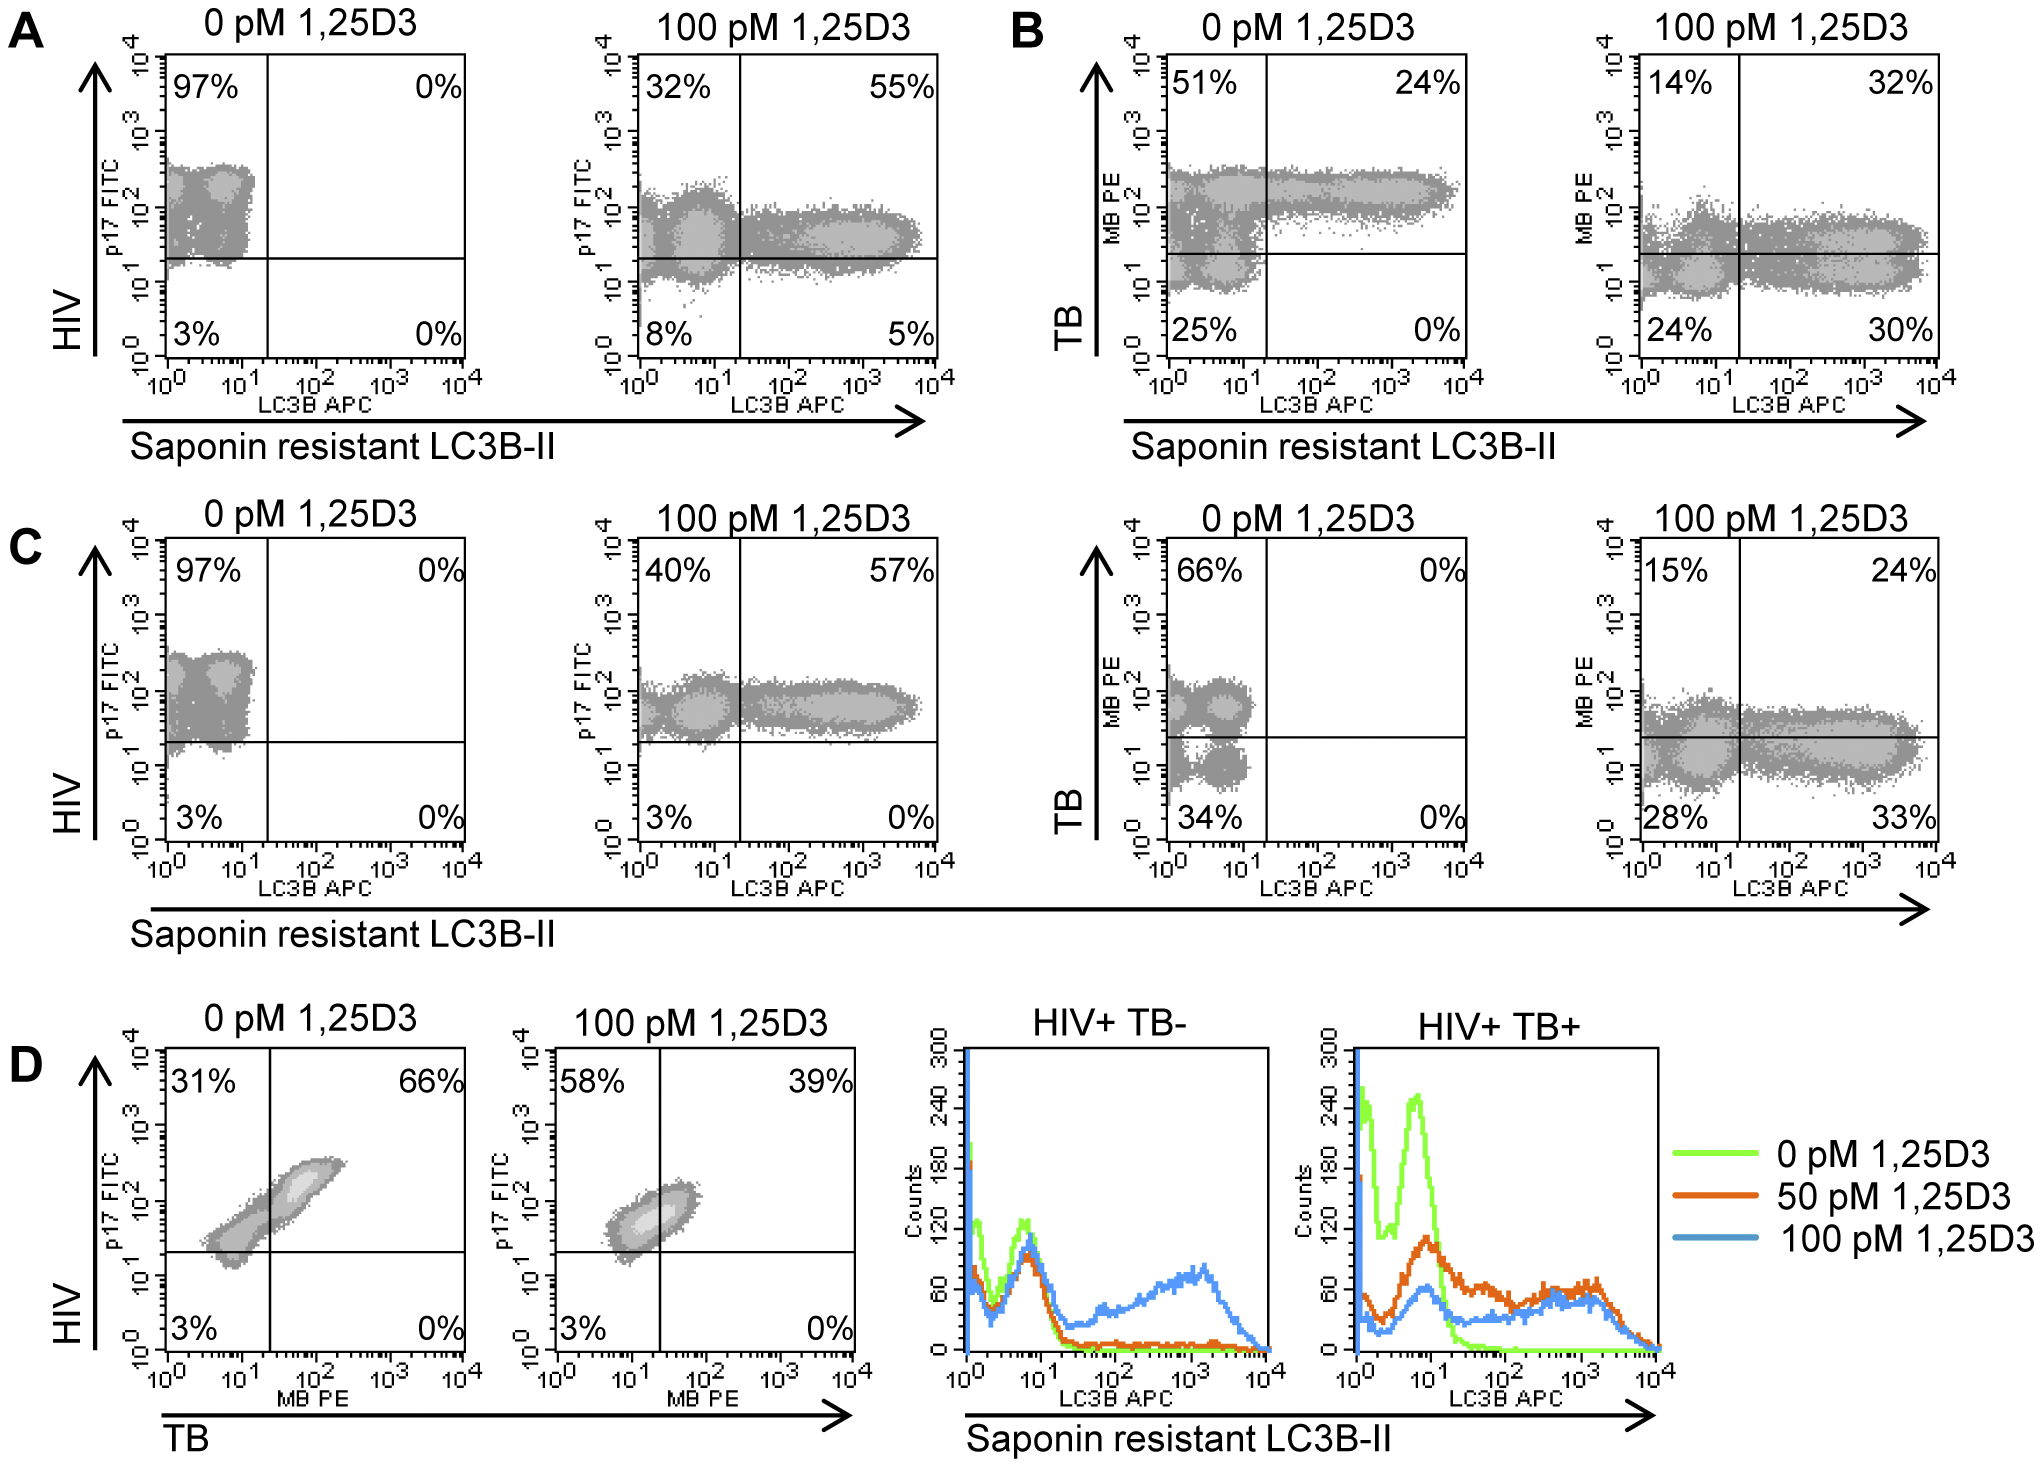 1,25D3 induces autophagy in human macrophages co-infected with HIV and <i>M. tuberculosis</i>.